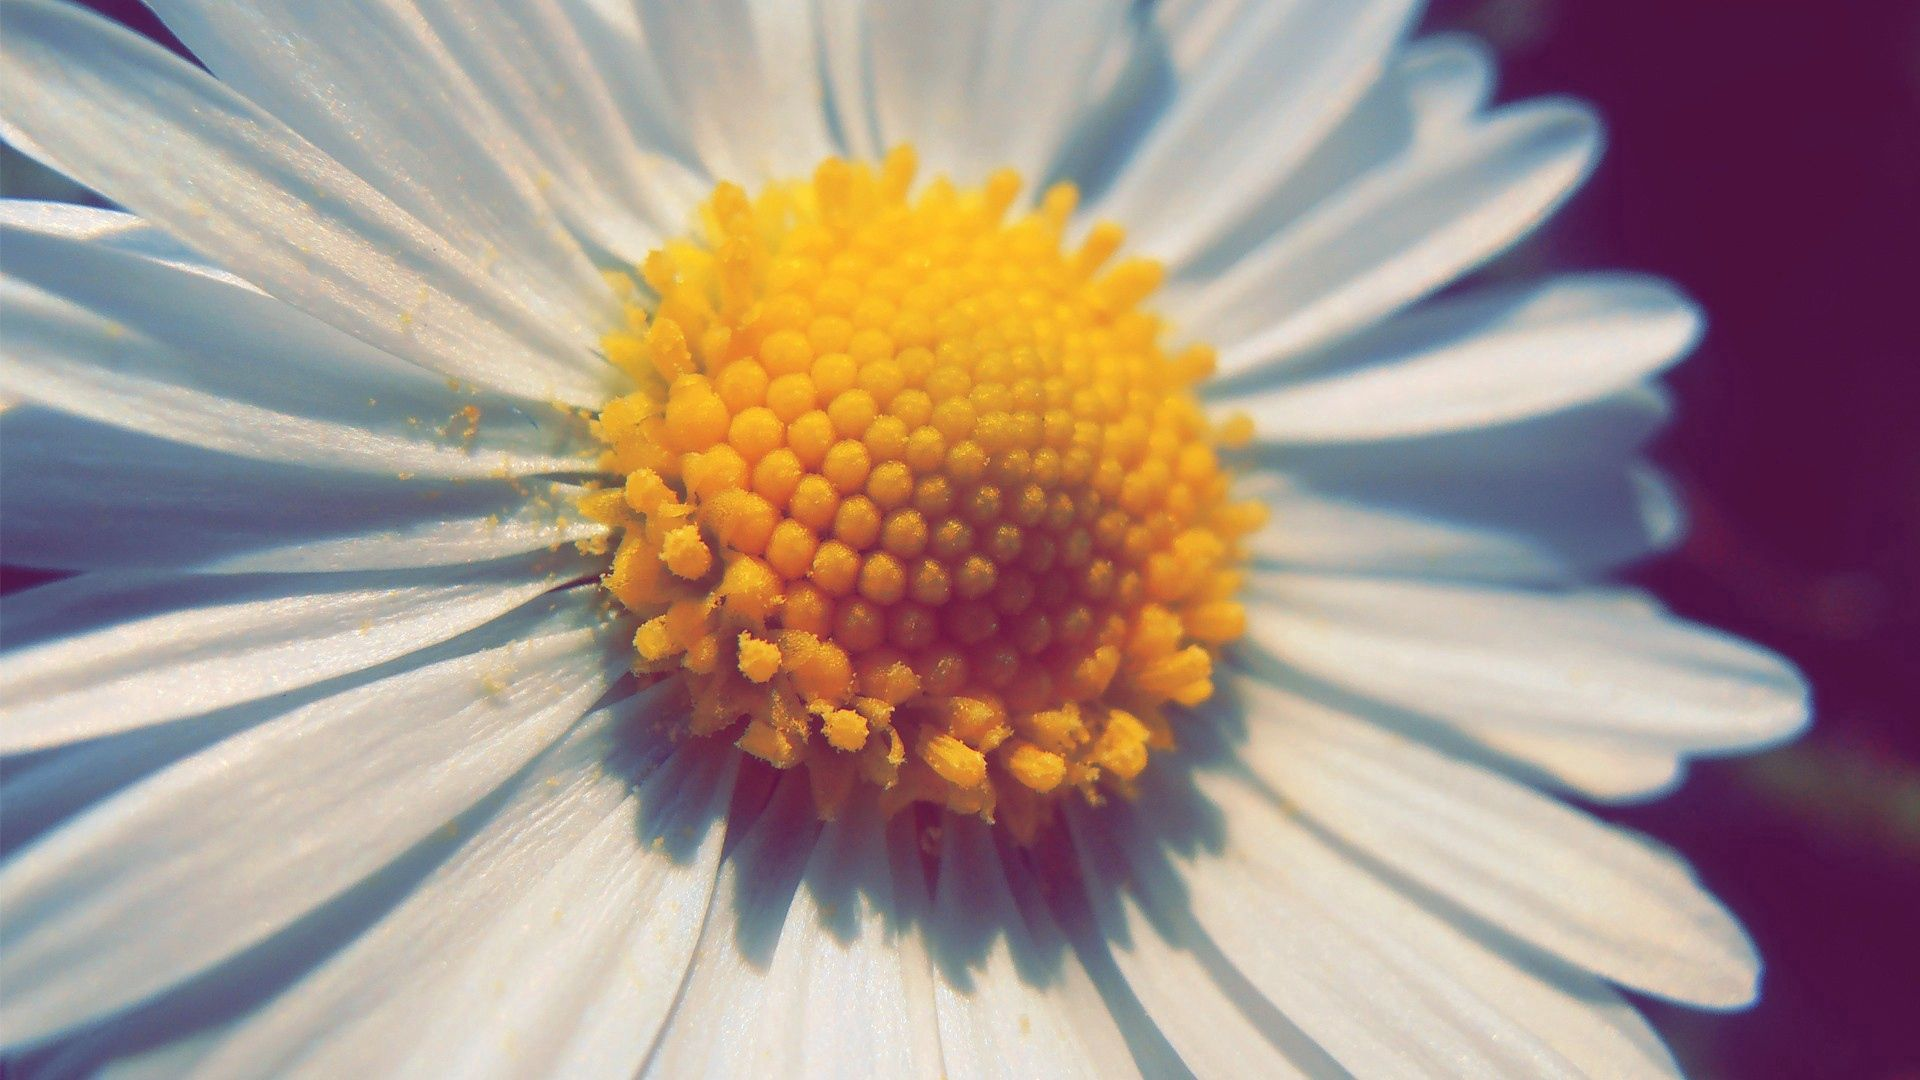 133139 download wallpaper Macro, Chamomile, Camomile, Flower, Petals, Pollen screensavers and pictures for free